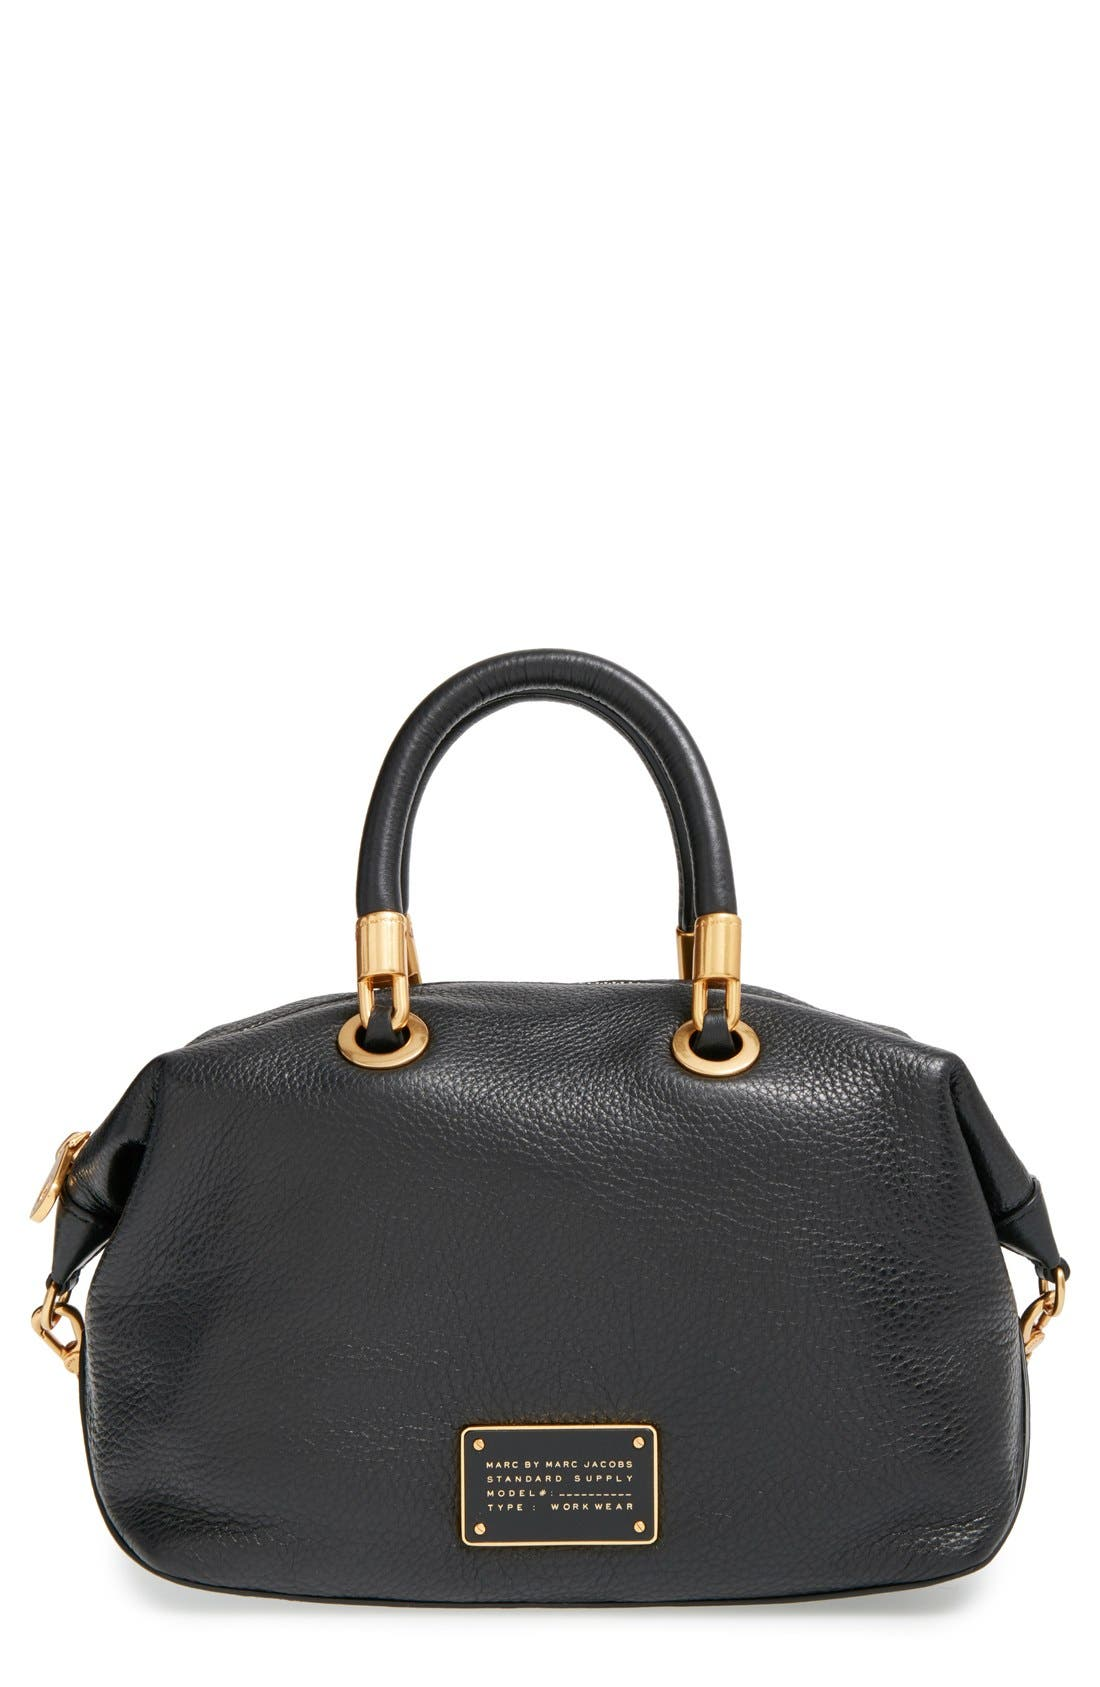 MARC JACOBS, MARC BY MARC JACOBS 'New Too Hot to Handle' Leather Satchel, Main thumbnail 1, color, 001